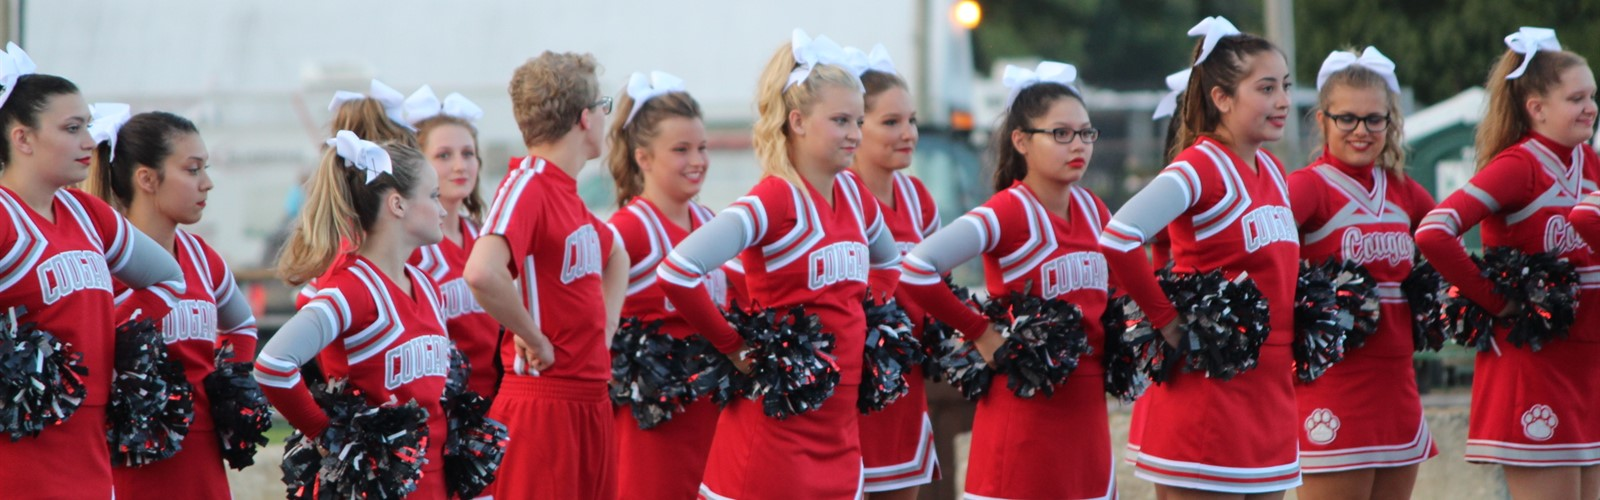 Van Wert High School cheerleaders compete at the Defiance county fair